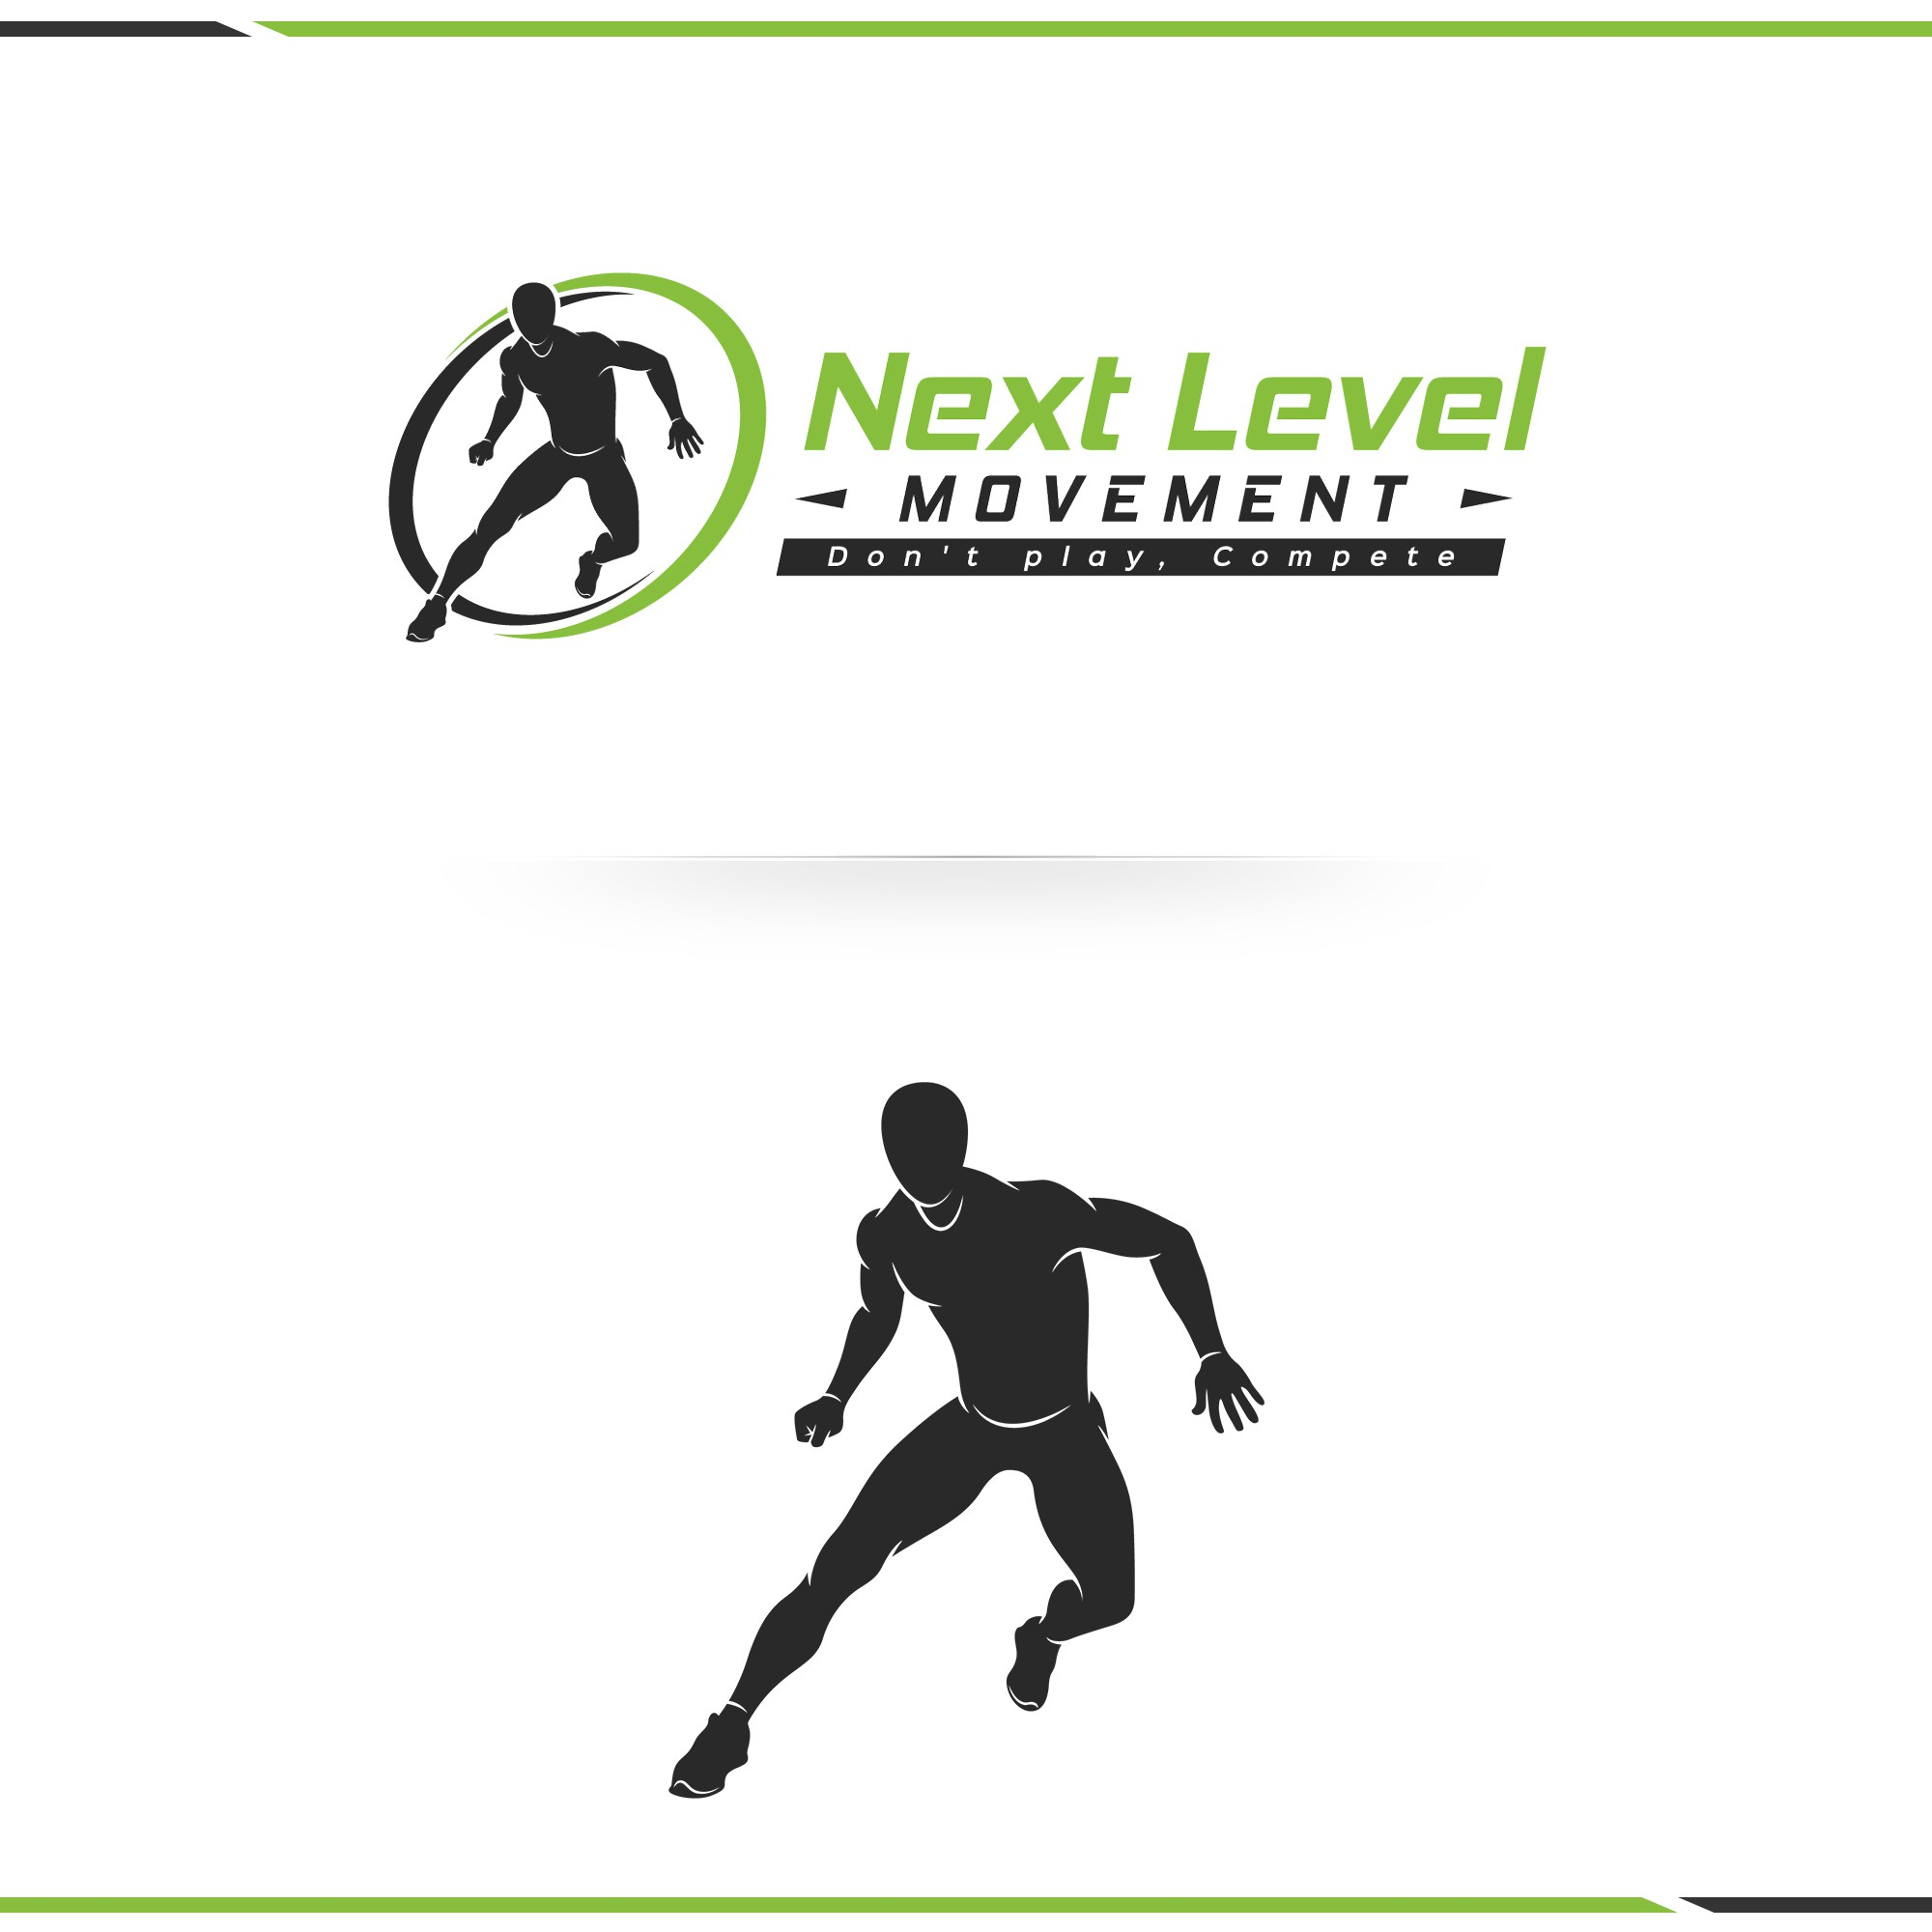 Create an athletic movement symbol, an athlete moving laterally.